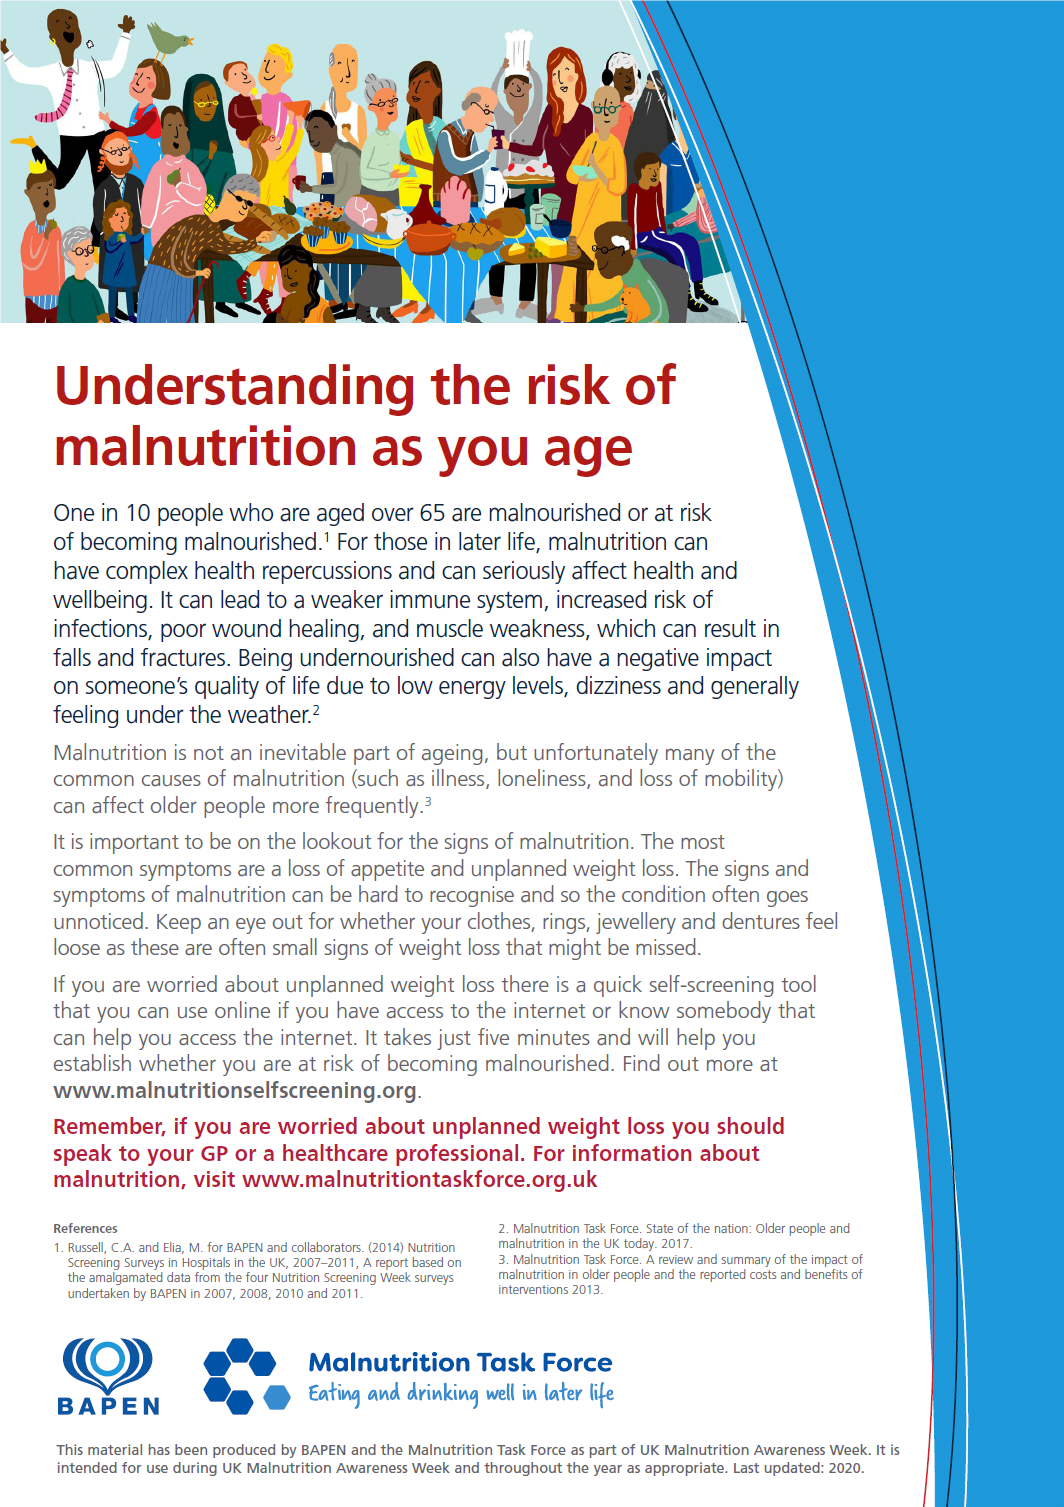 Understanding Risk poster for Malnutrition Awareness Week 2020